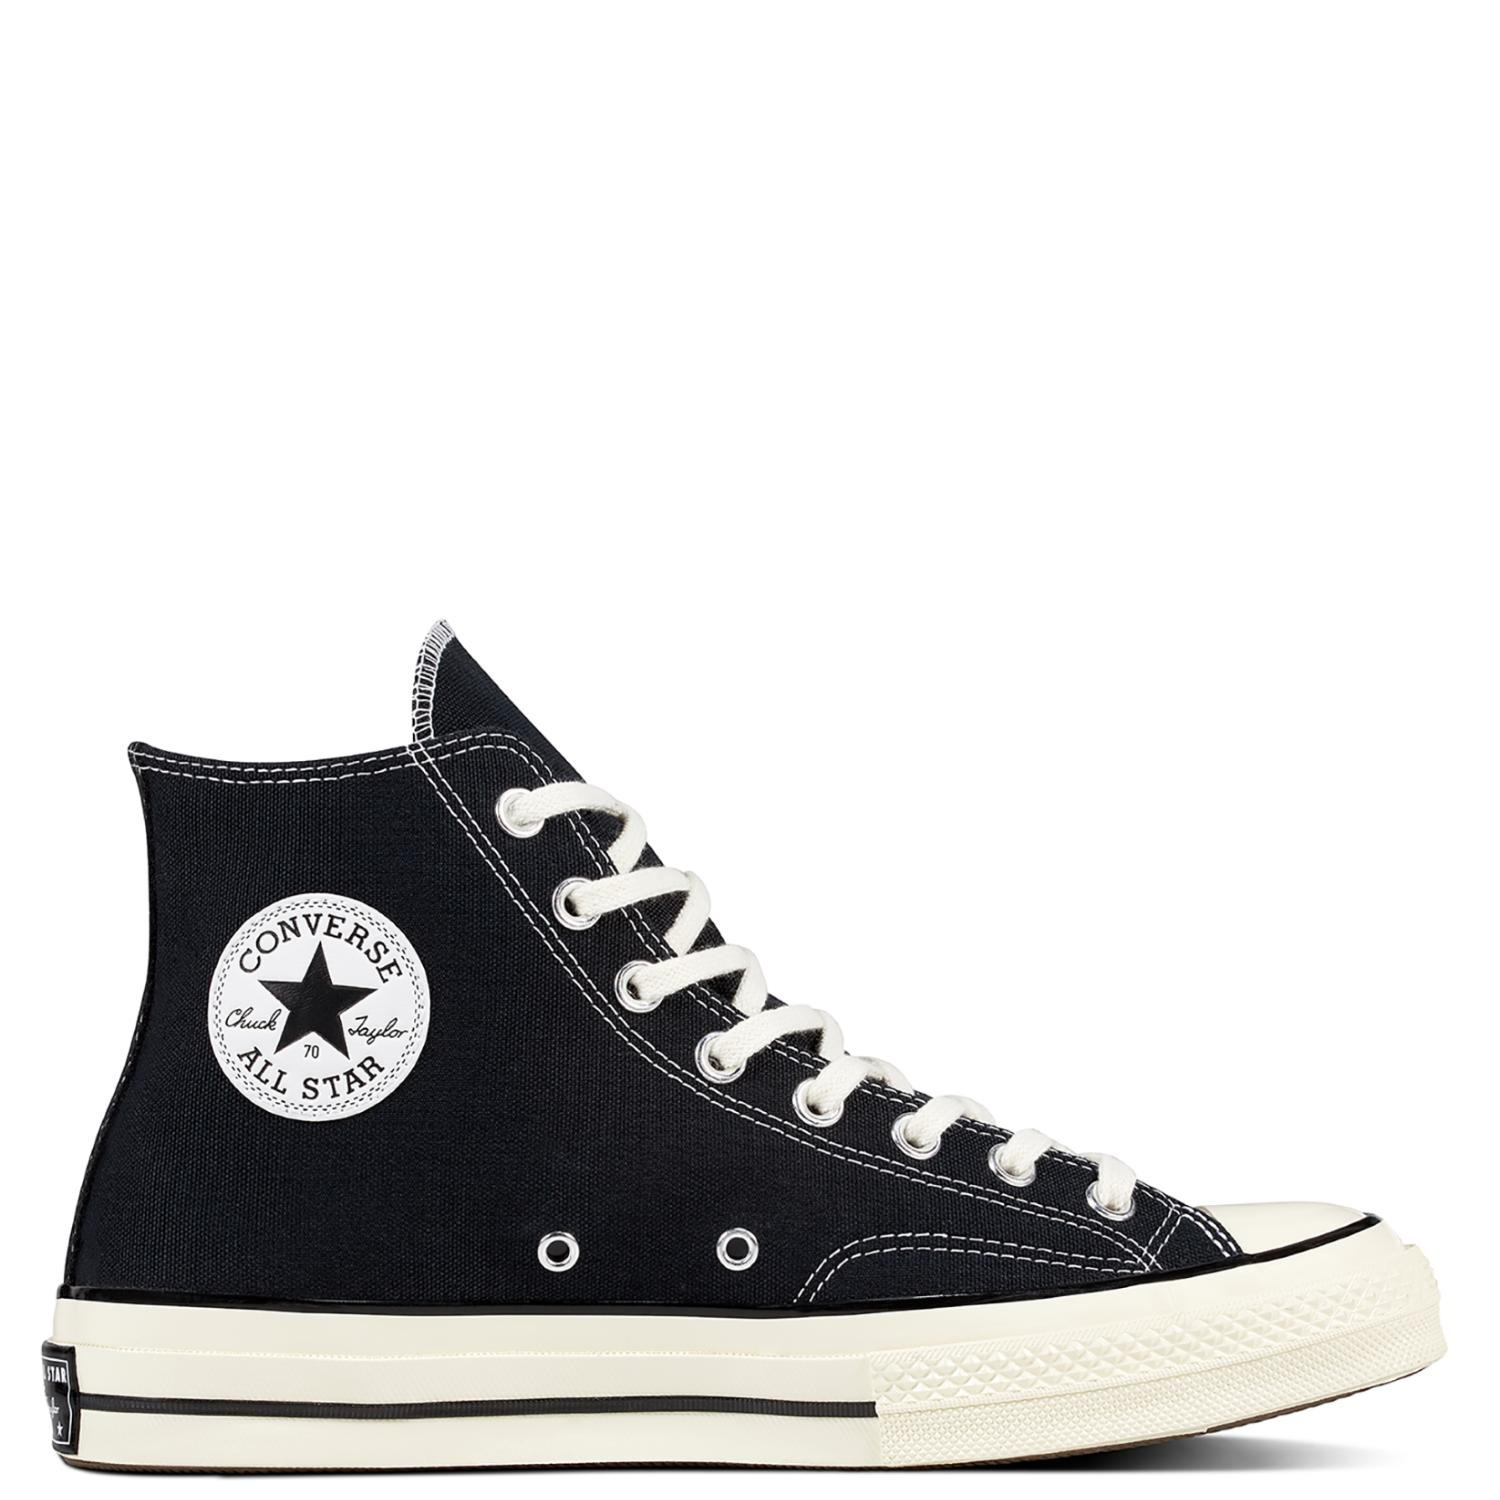 Converse Philippines  Converse price list - Shoes for Men   Women ... 8b43a12c2